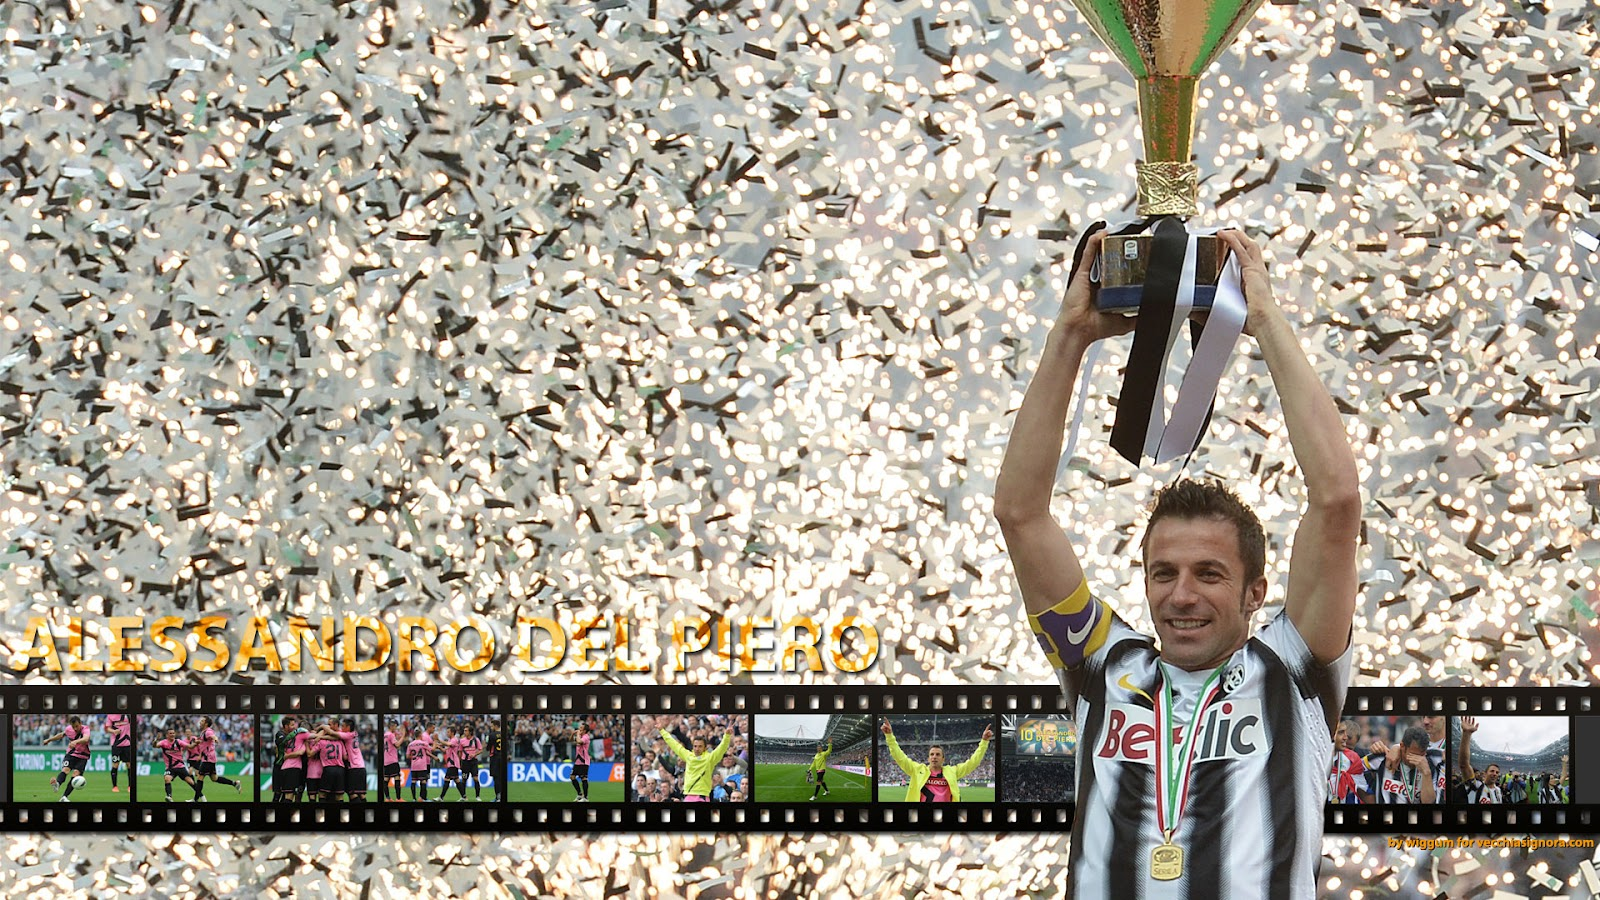 Sfondi juventus hd juventus blog for Sfondo juventus hd